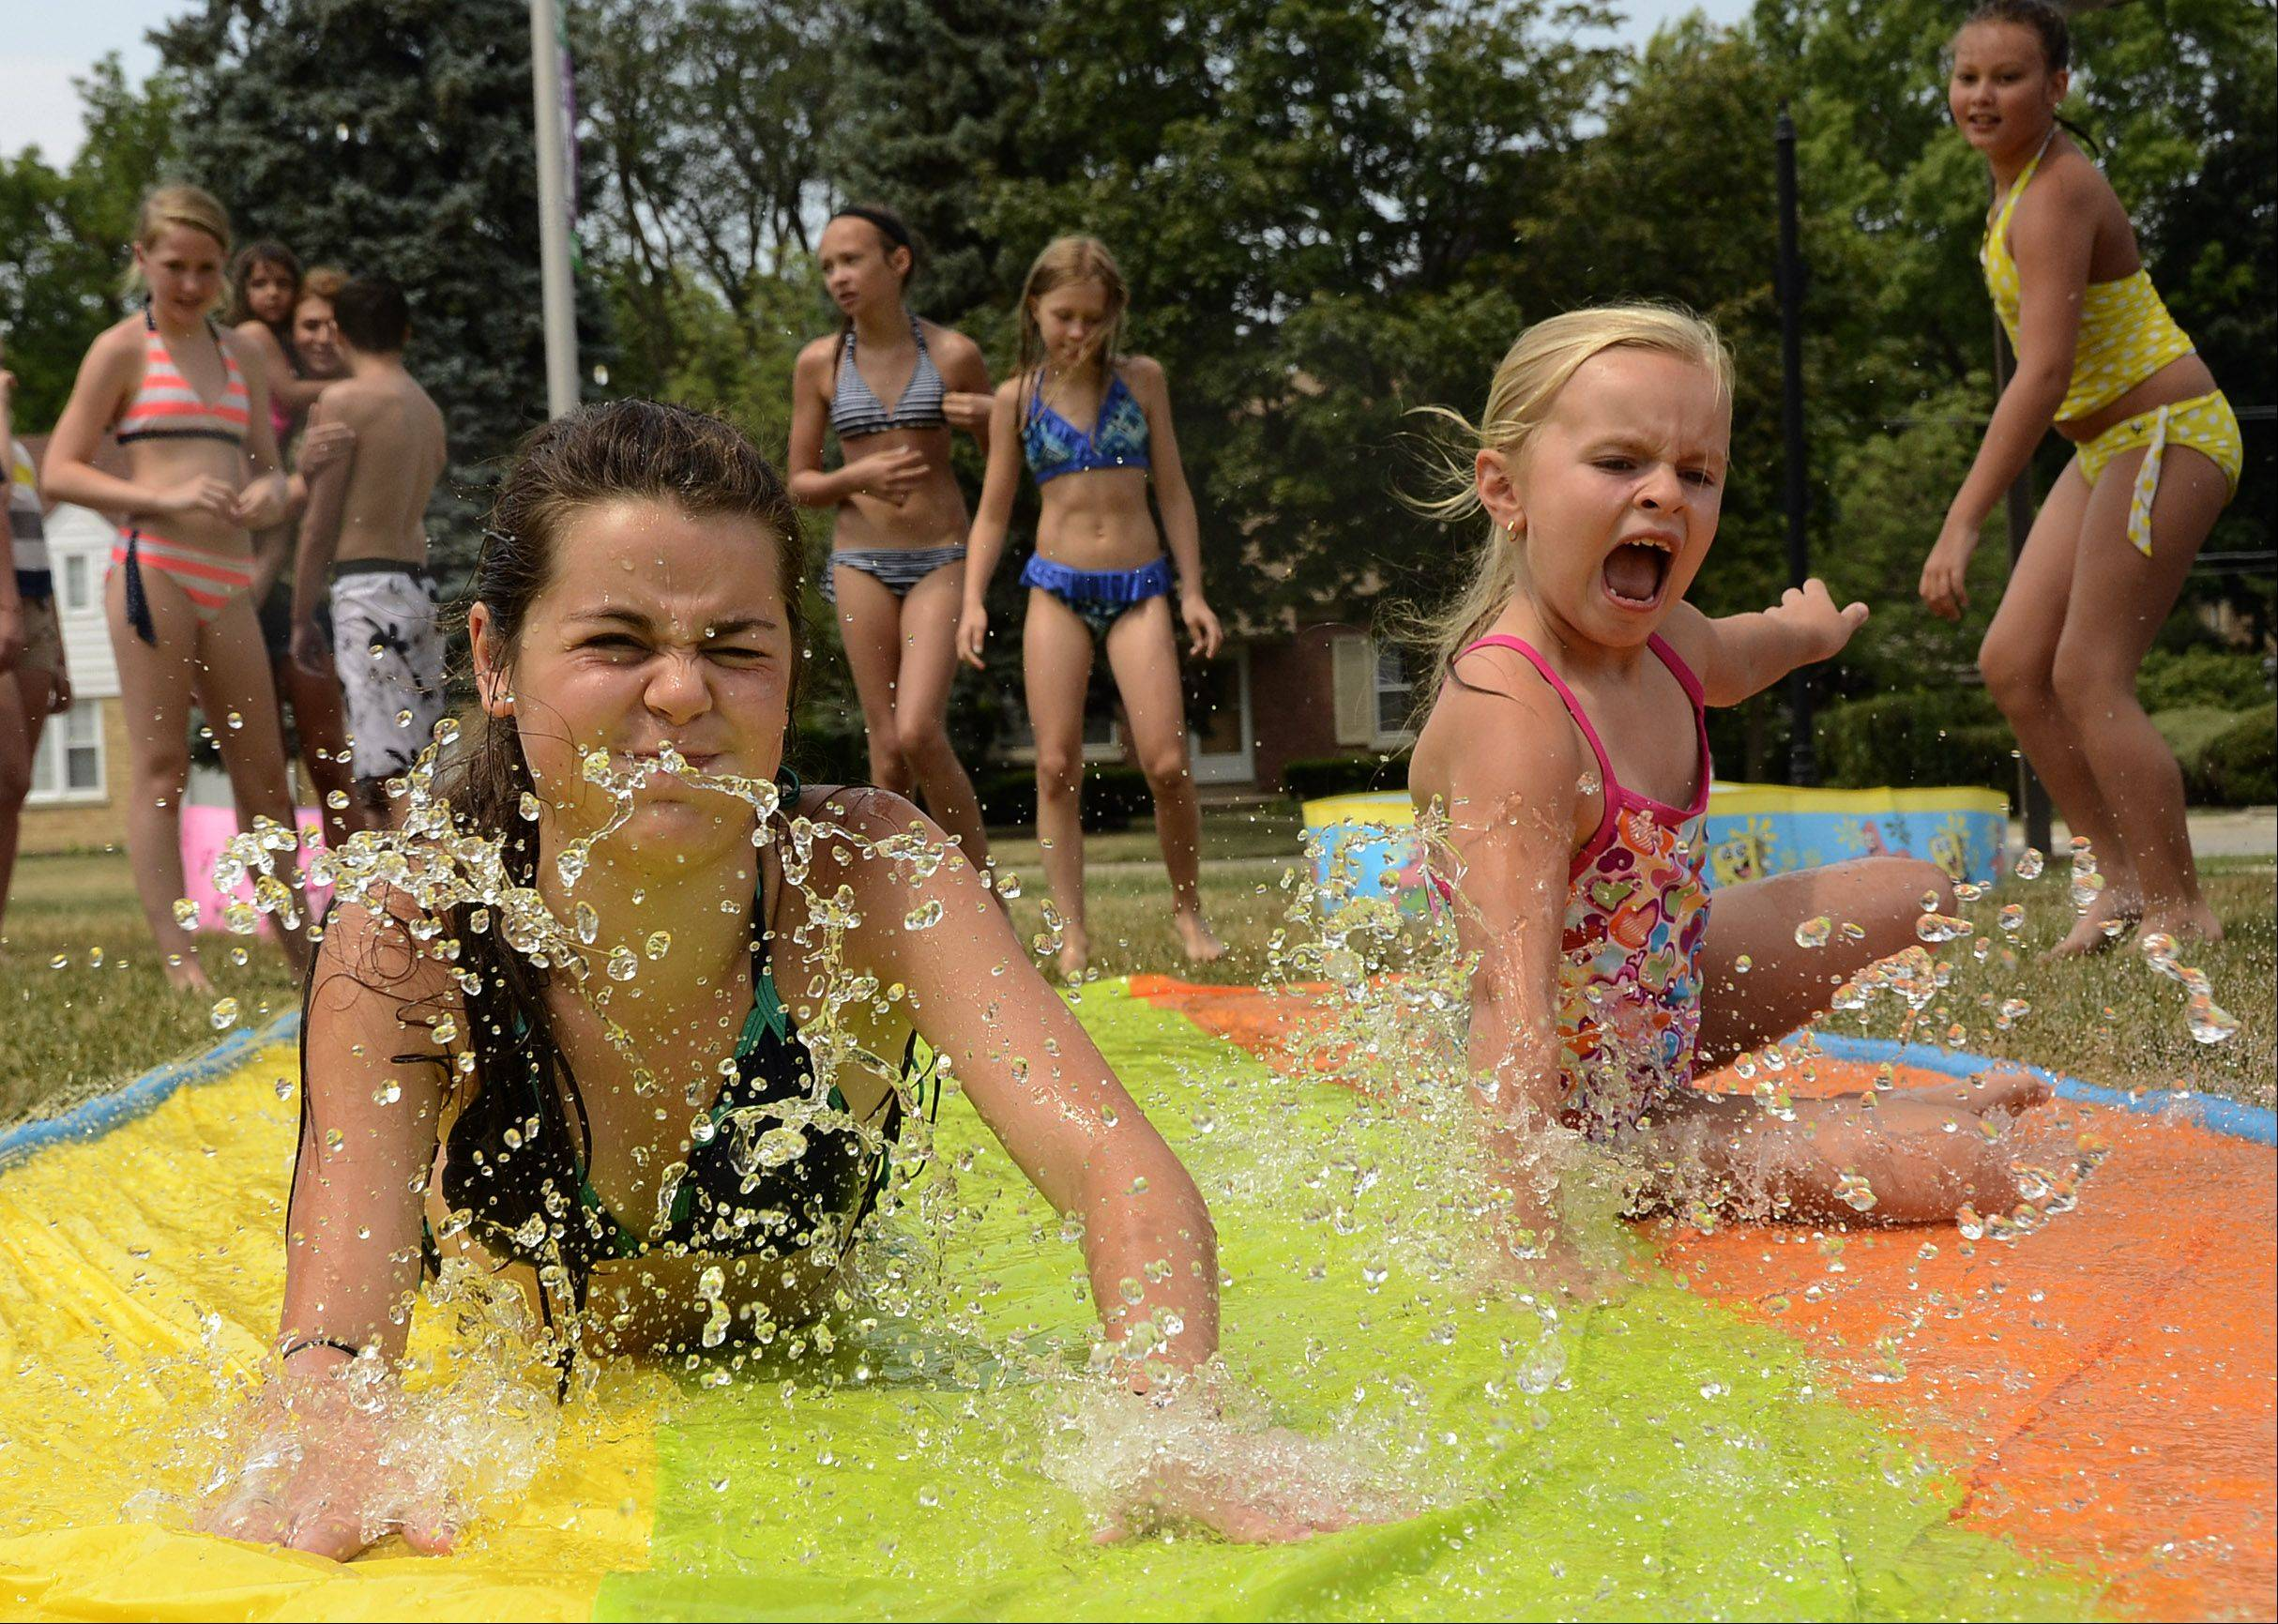 Bill Zars/bzars@dailyherald.com Gabi Aranza, 11, of Hoffman Estates, left, and Adrina Lee, 6, of Schaumburg cool off during theater camp at Faith Lutheran Church in Arlington Heights Thursday as the temperature threatens to his 100 degrees.